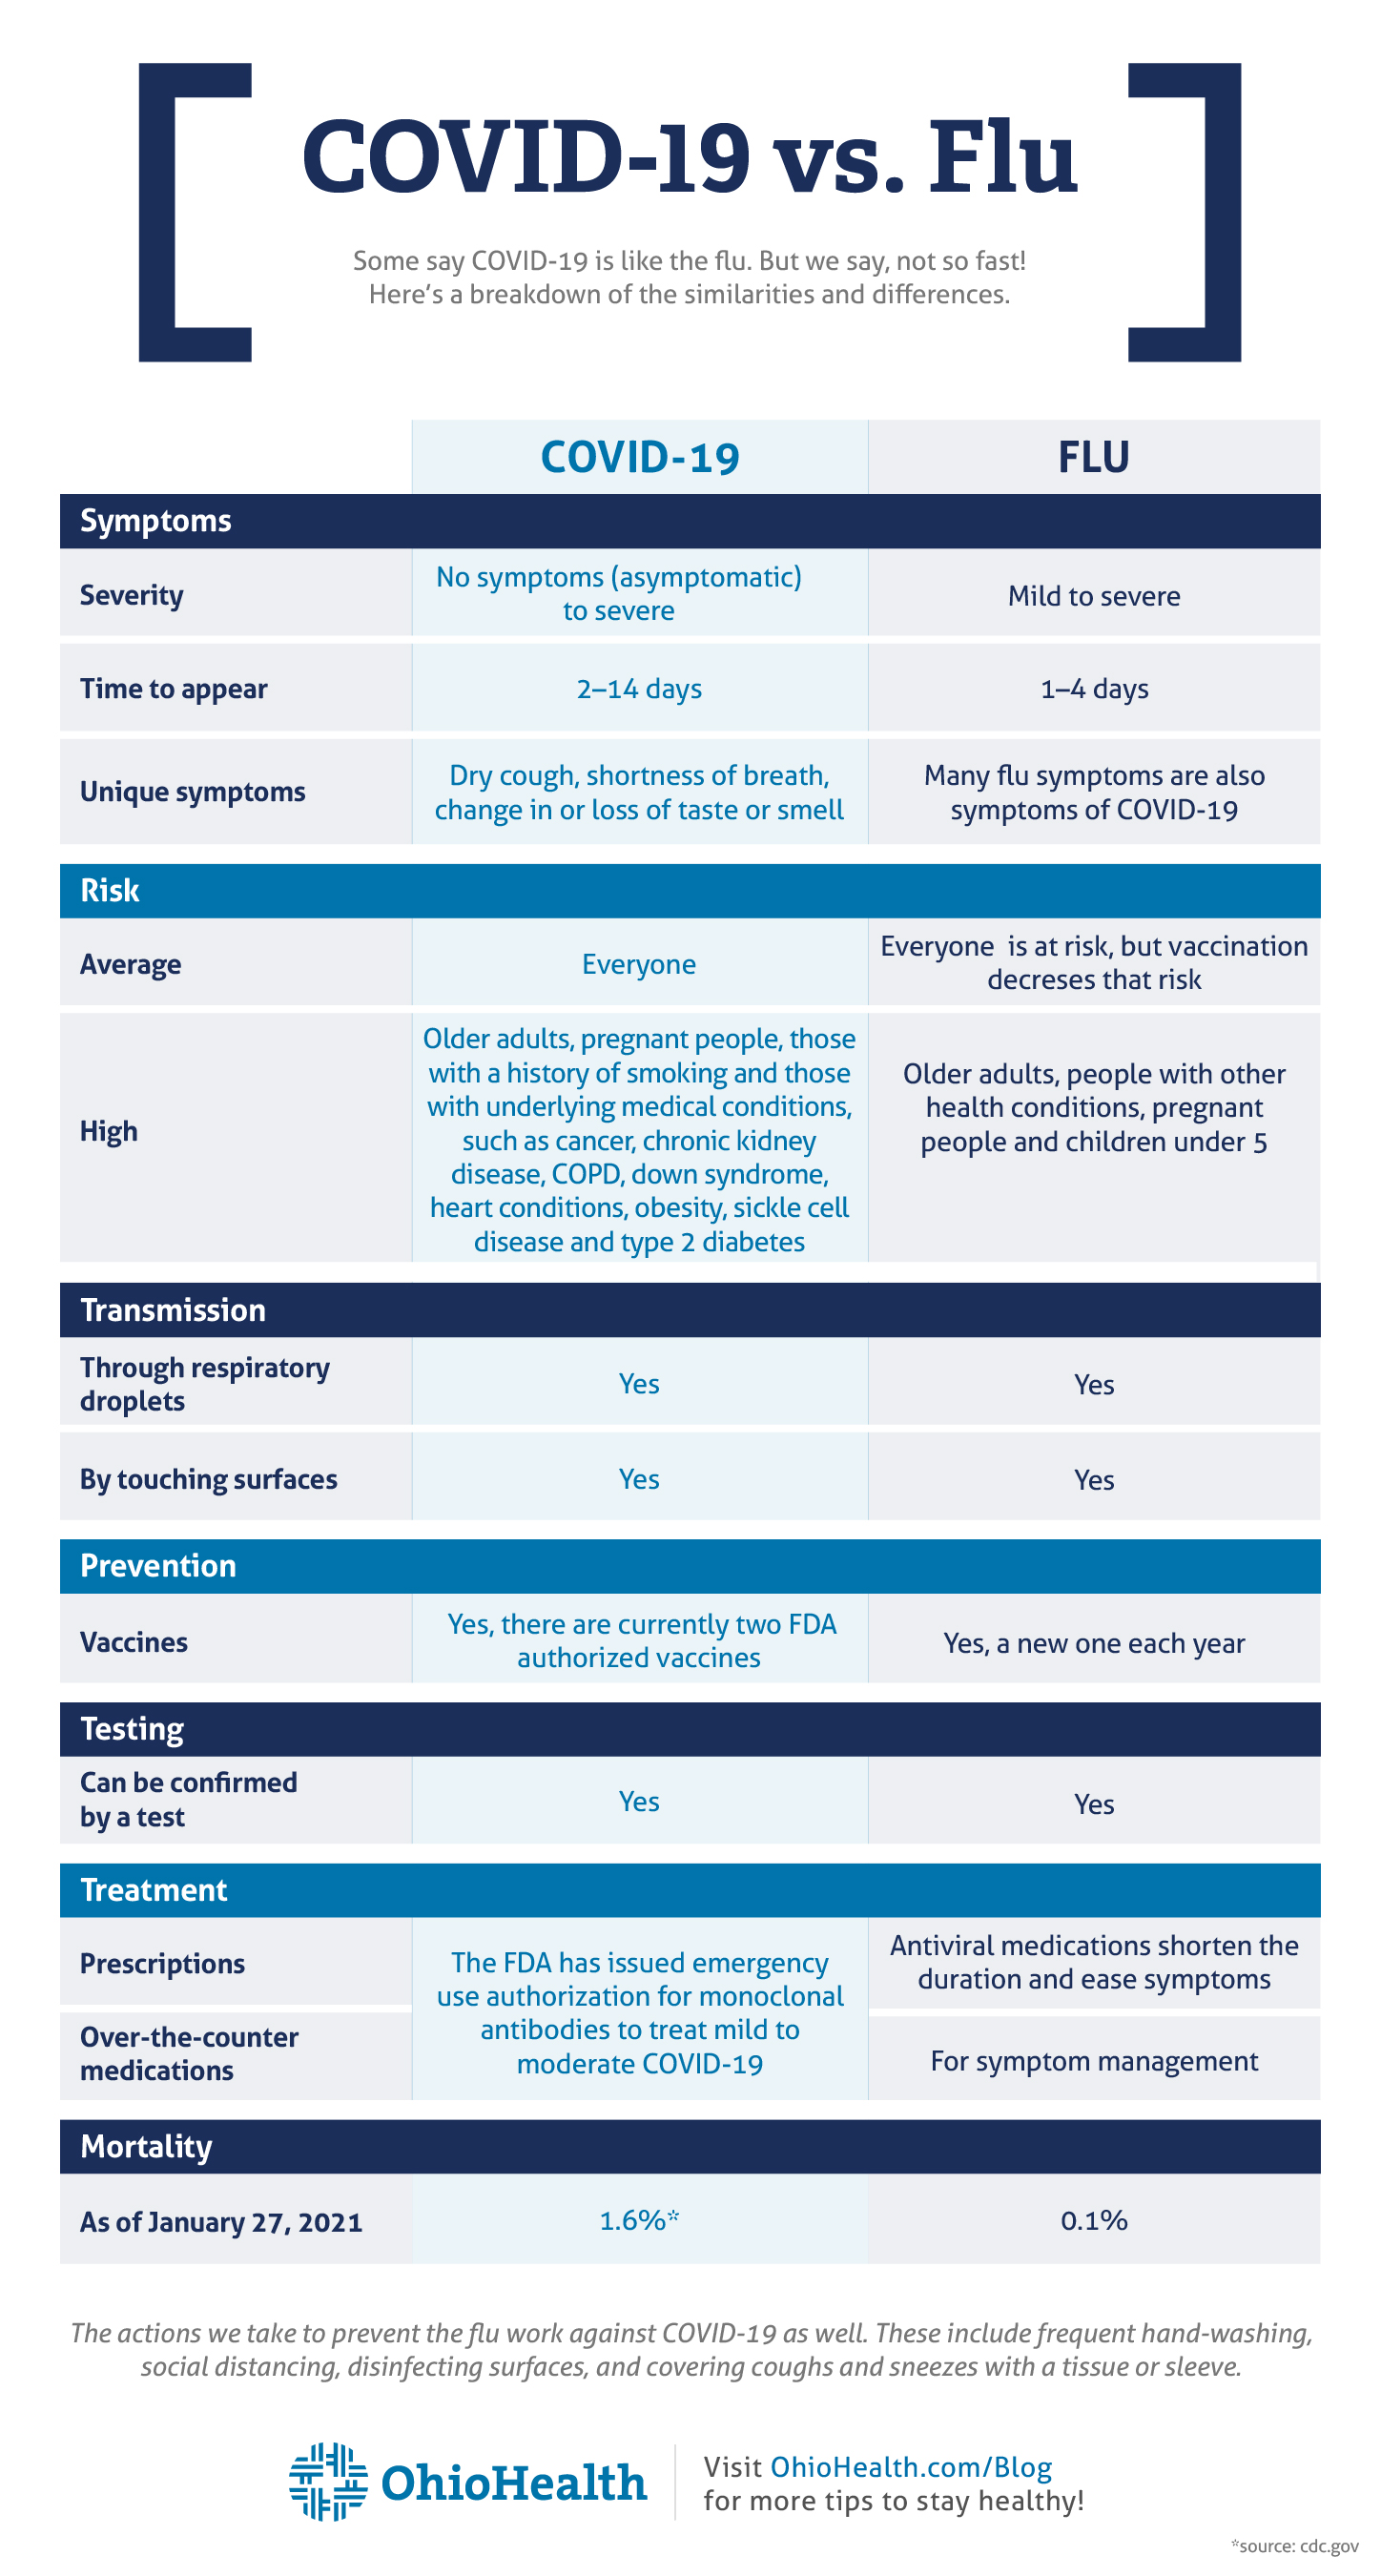 Infographic comparing symptoms and treatment between COVID-19 and the flu